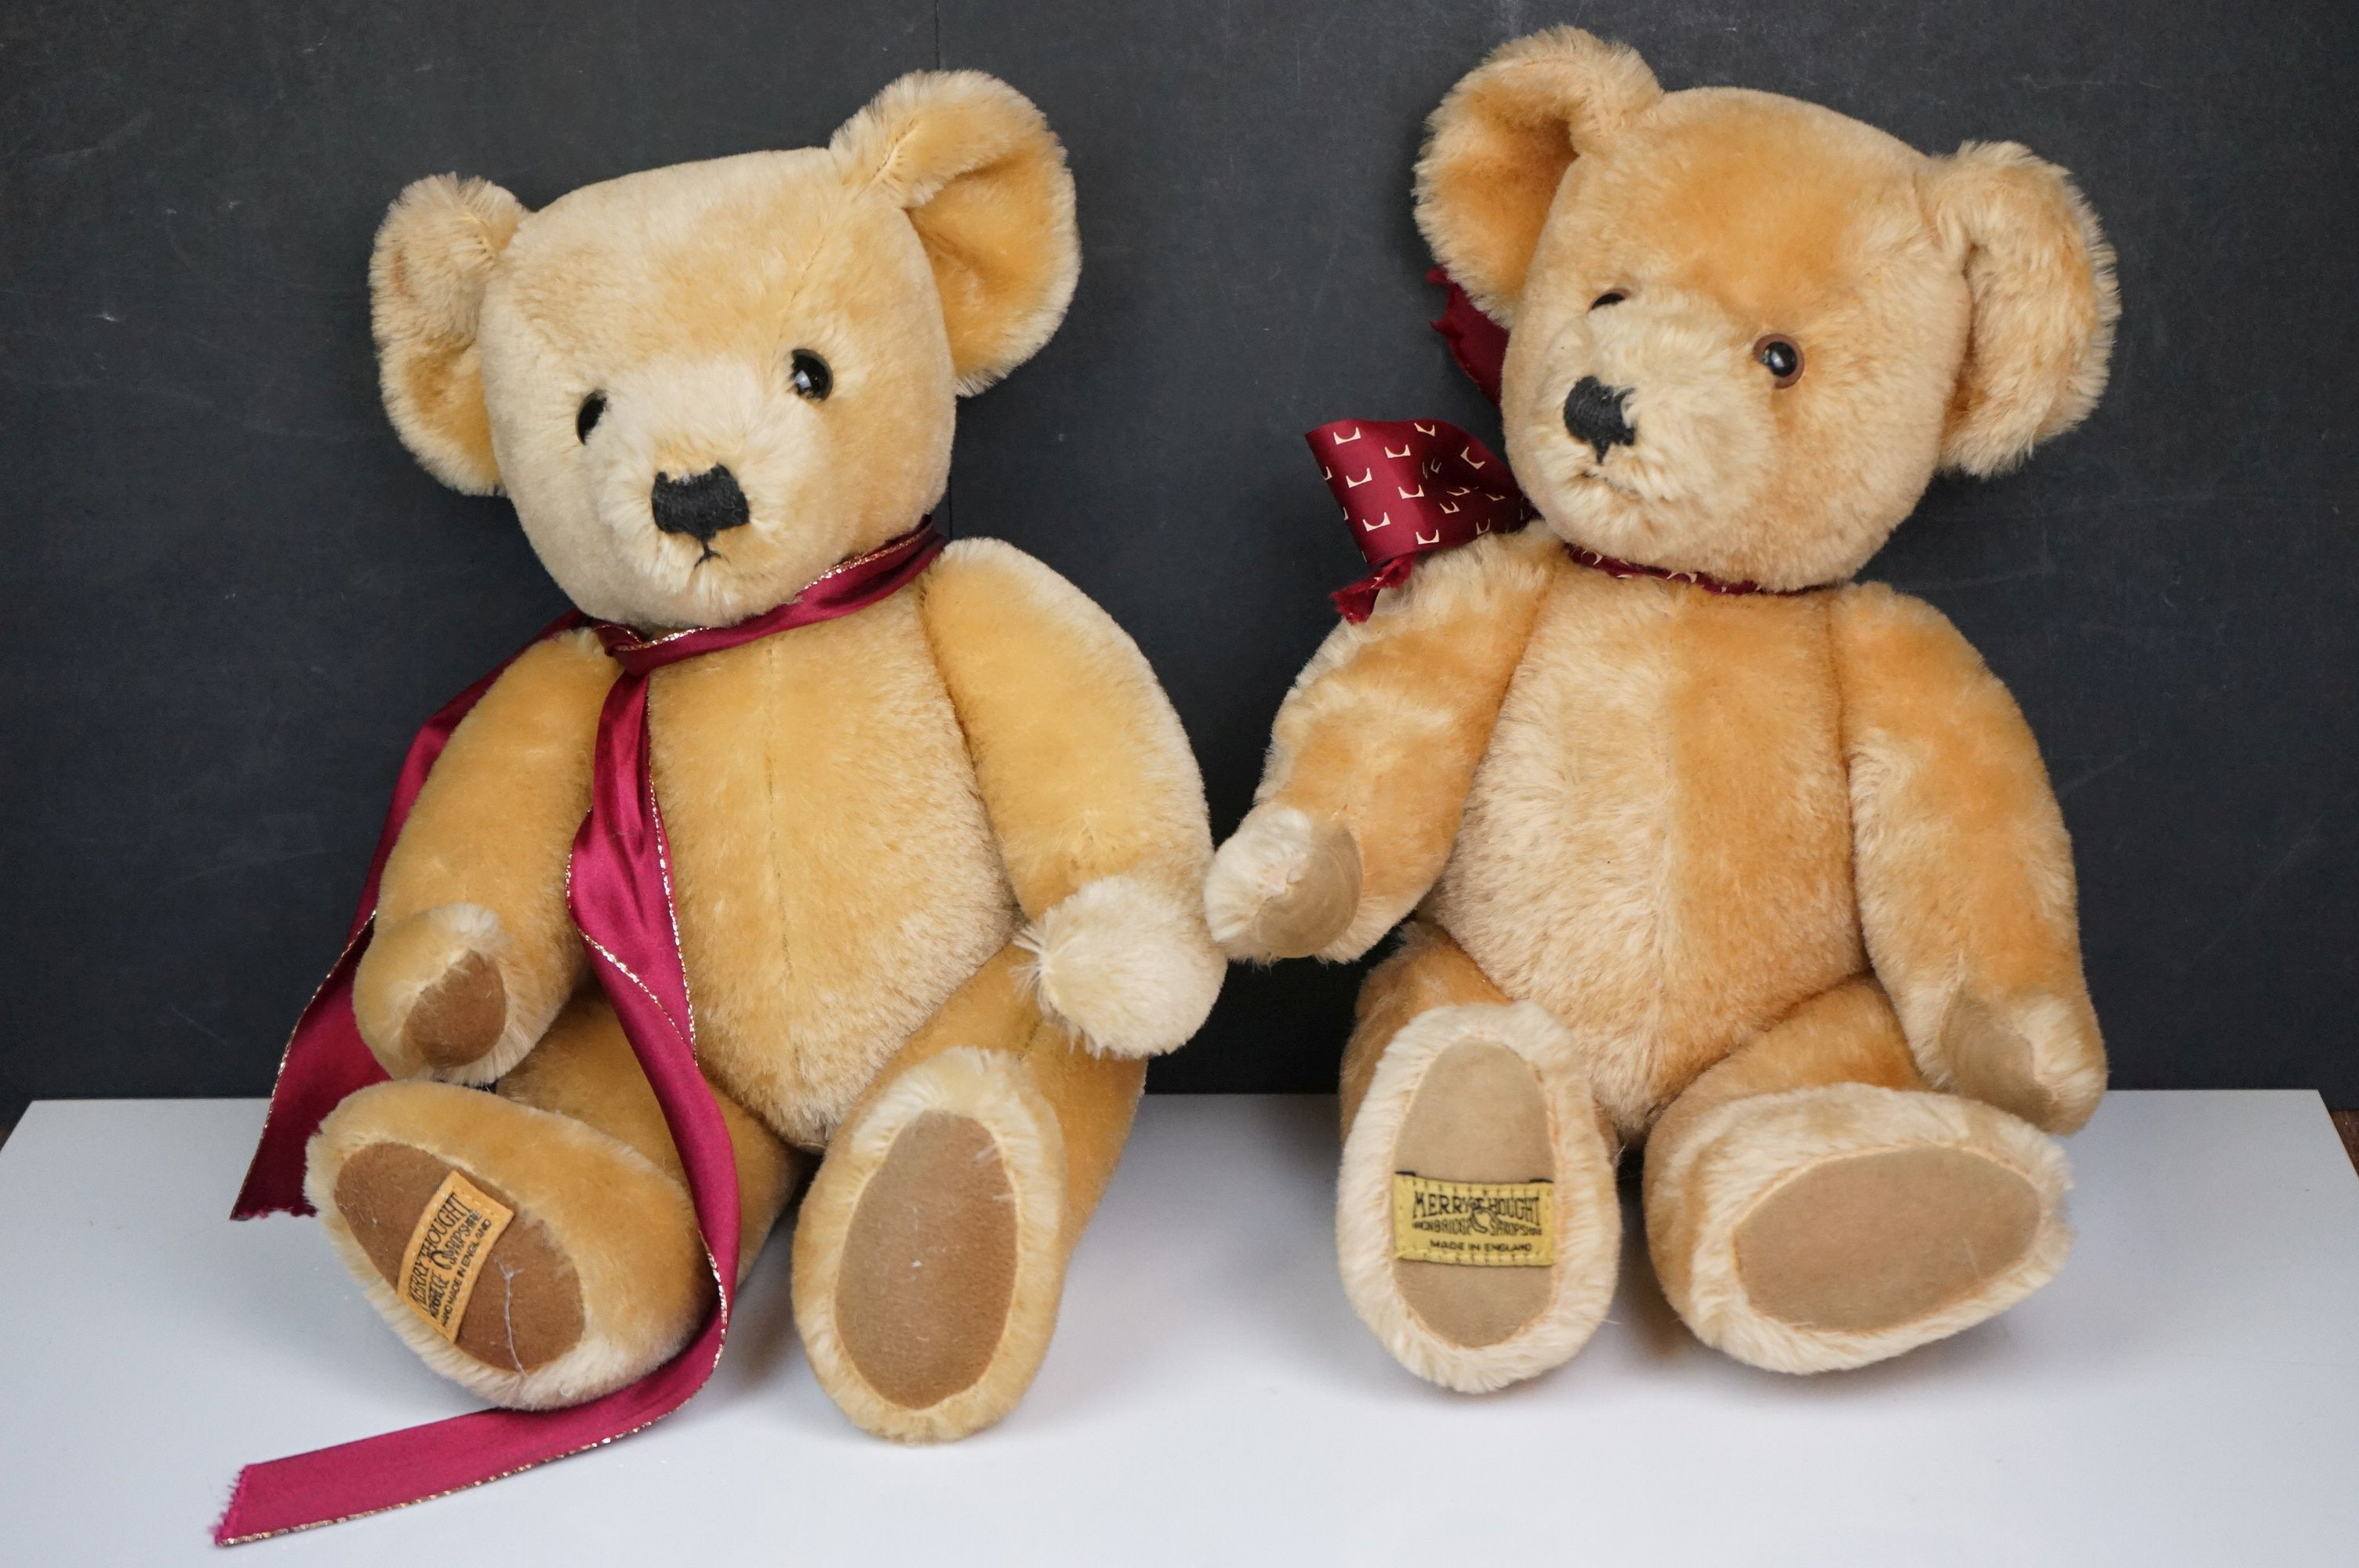 Steiff Teddy Bear, Two Merrythoughts Teddy Bears with Burgundy & Gold Ribbons to neck plus one - Image 4 of 8